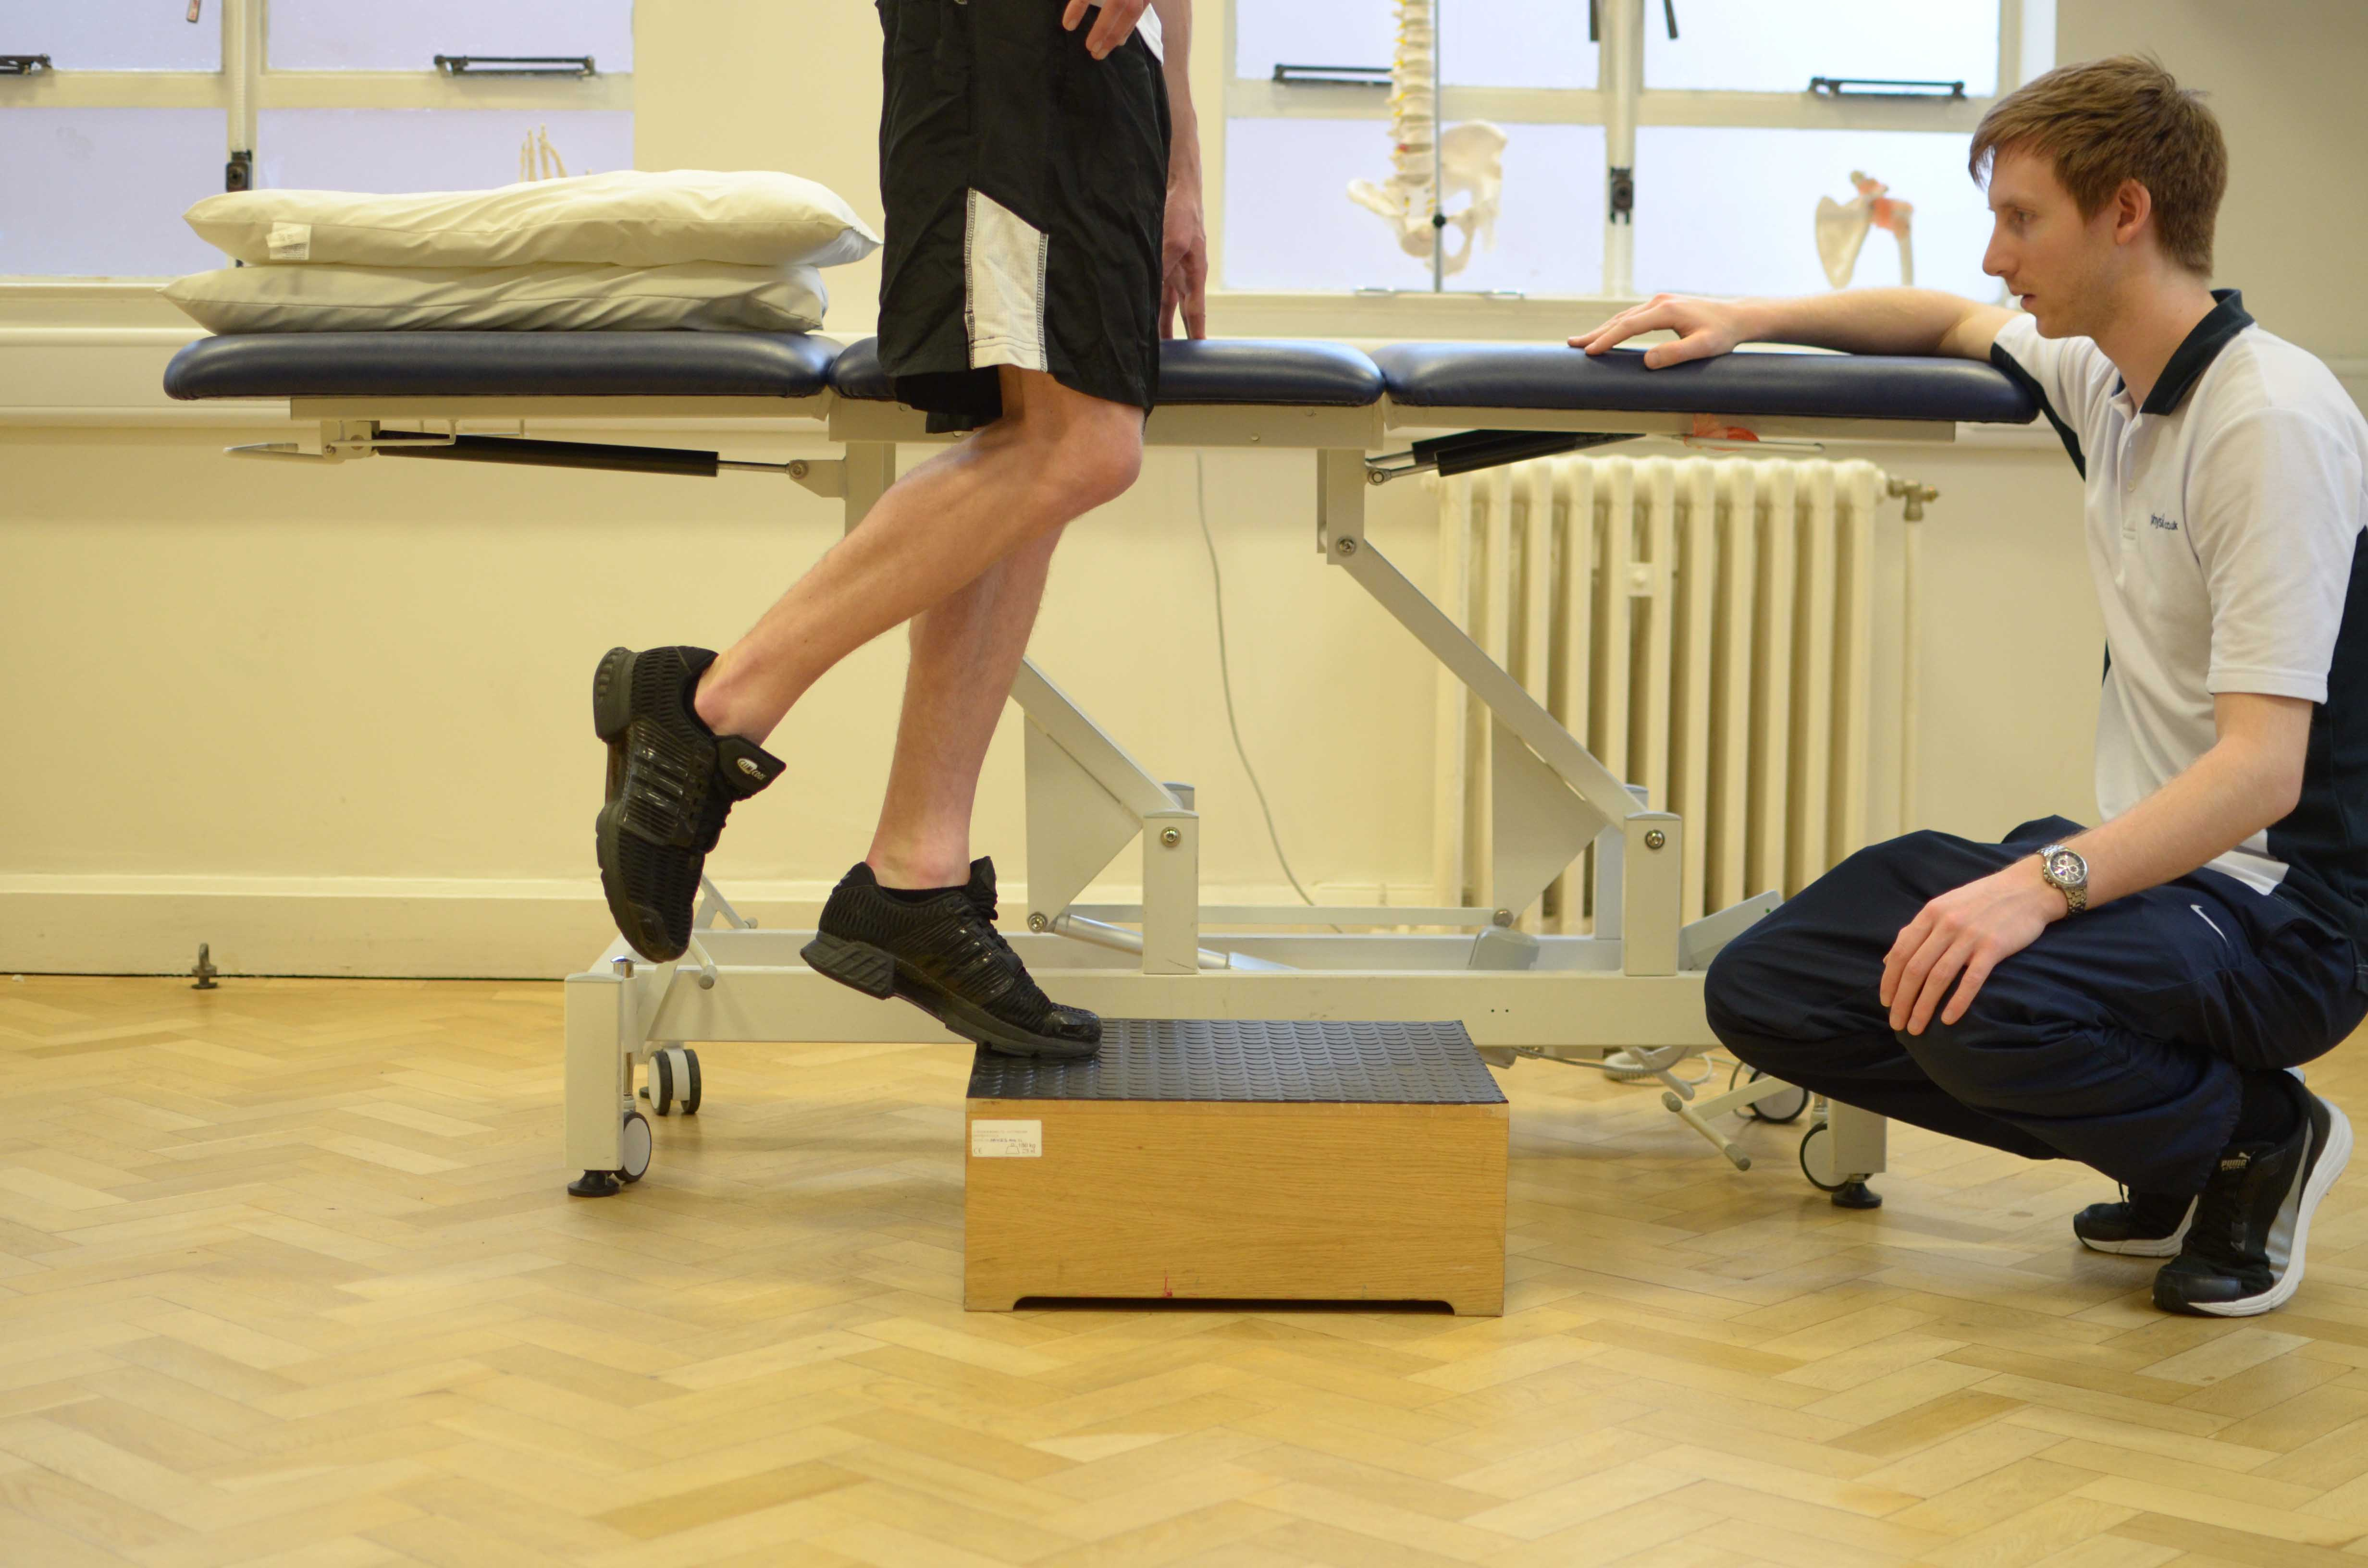 Progressive ankle strengthening exercises supervised by specialised physiotherapist